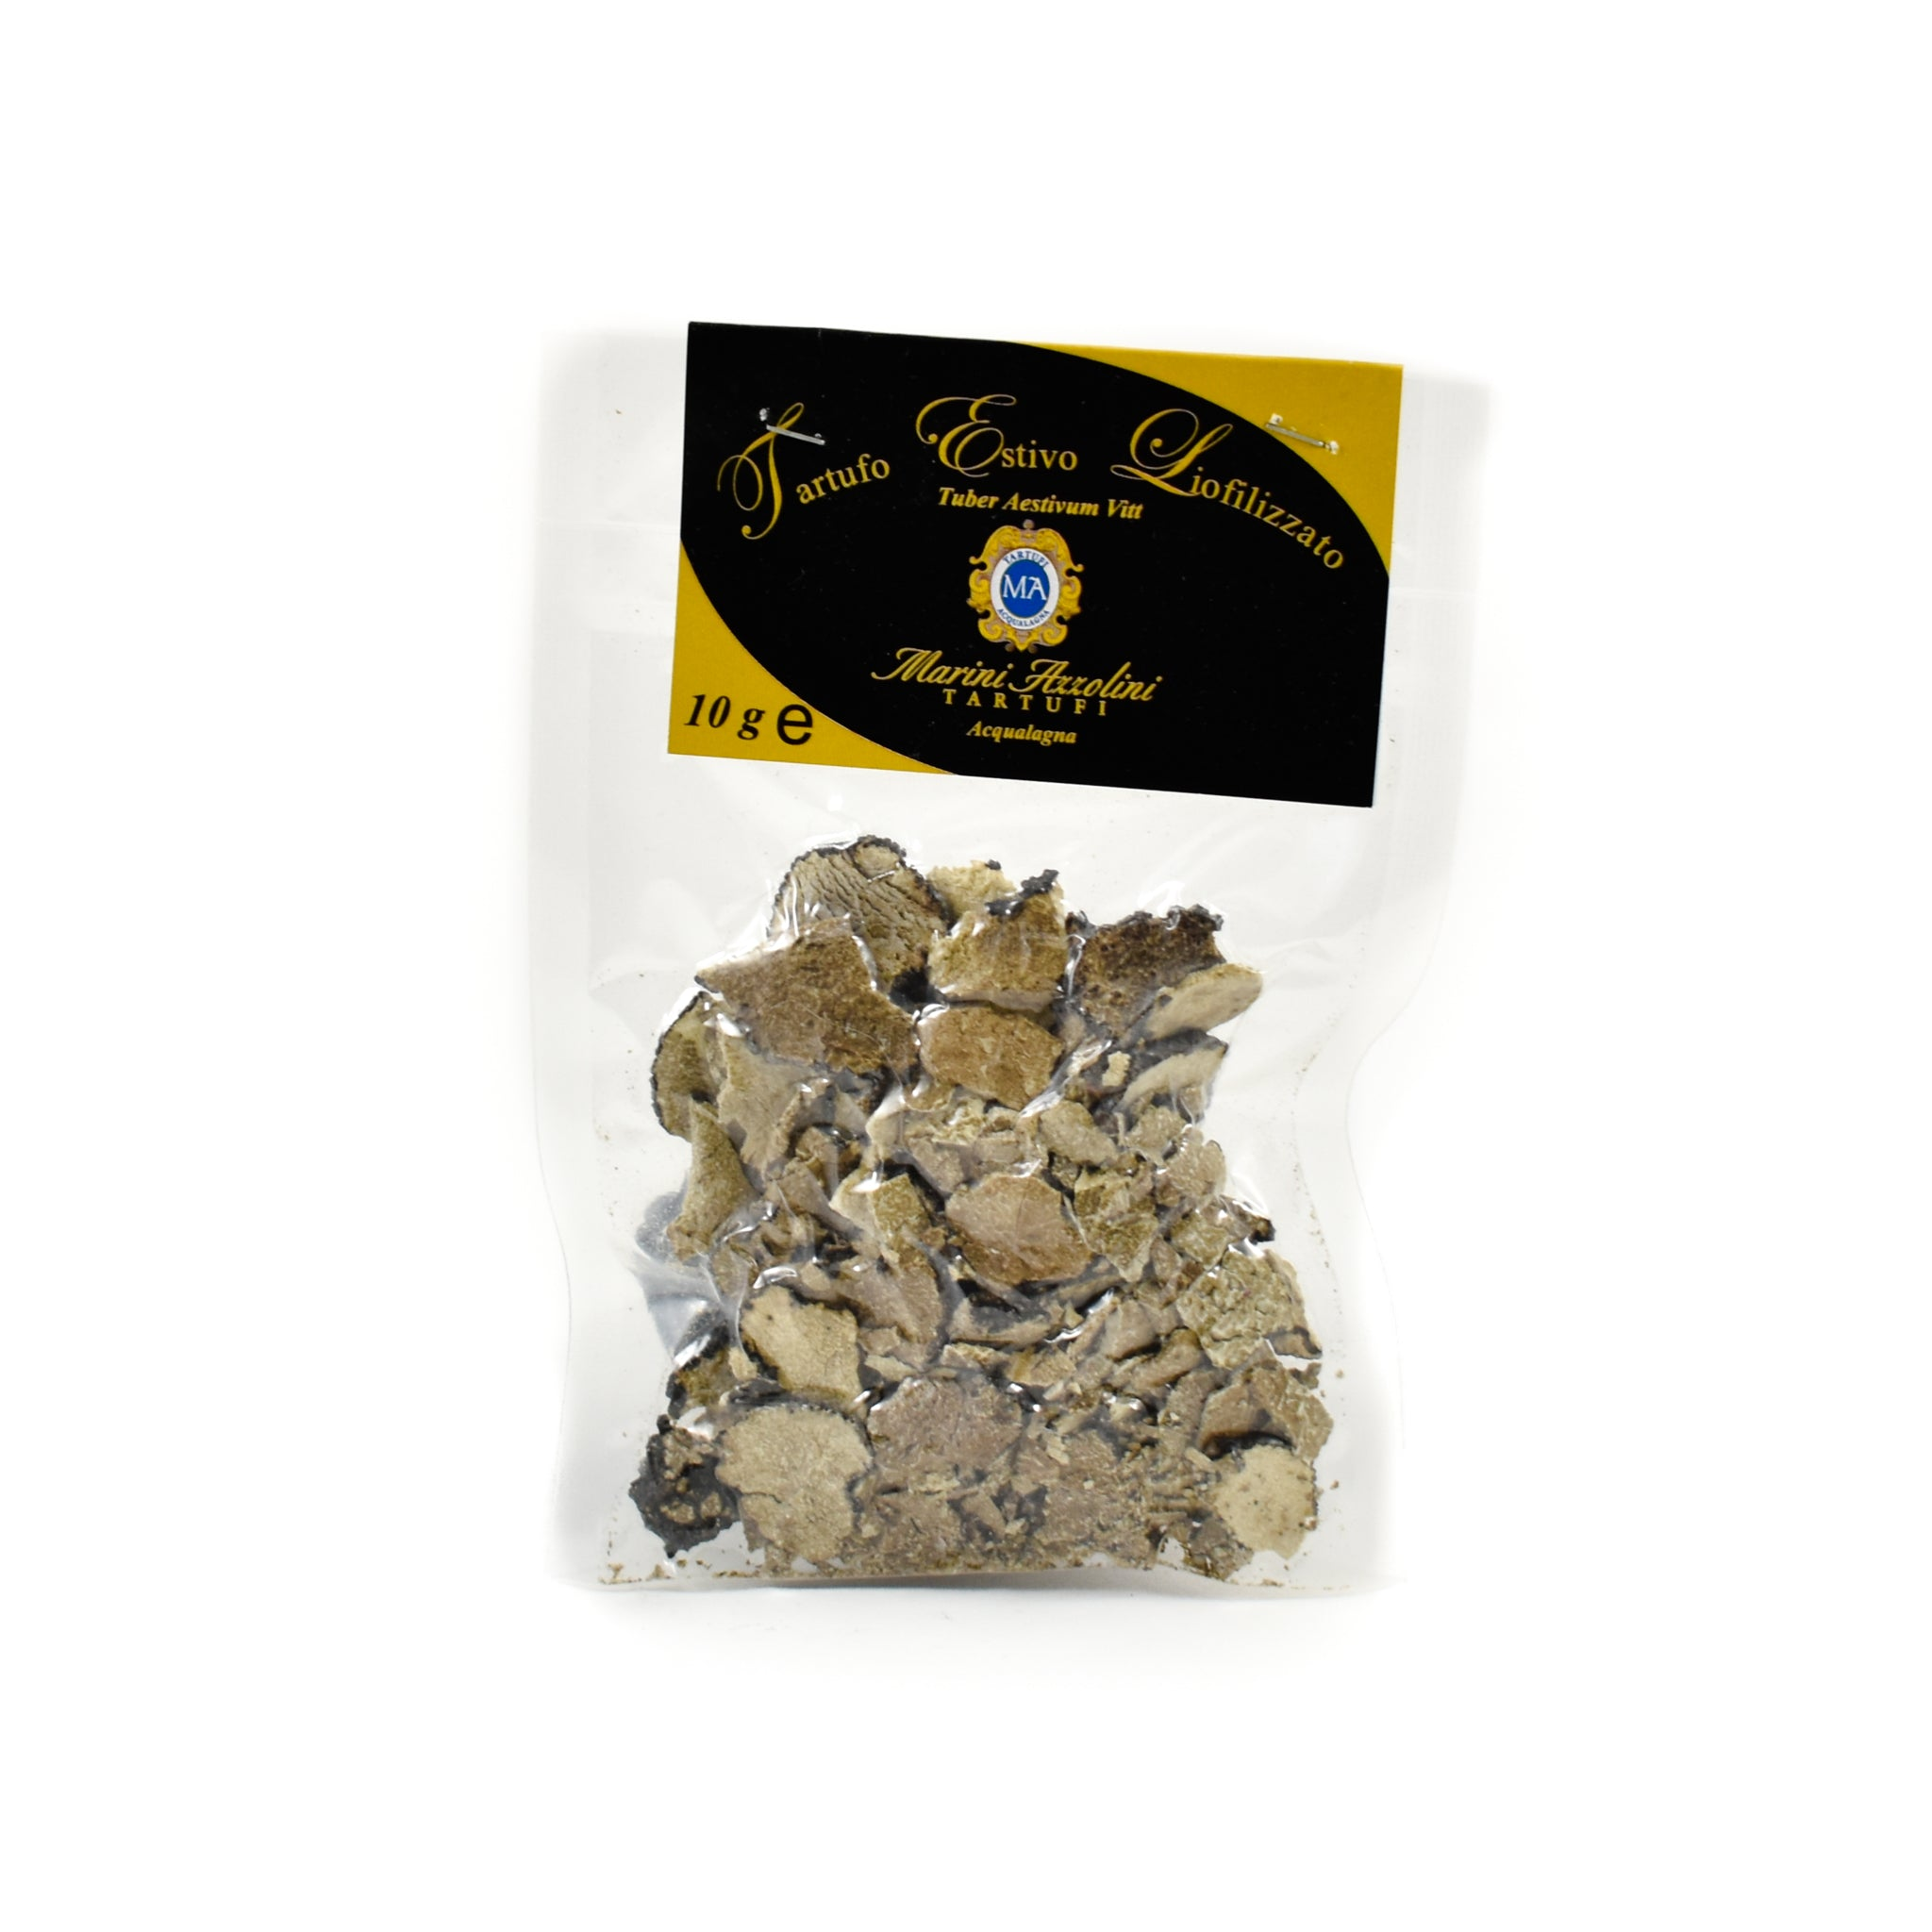 Marini Azzolini Freeze Dried Summer Truffle 10g Ingredients Mushrooms & Truffles Italian Food